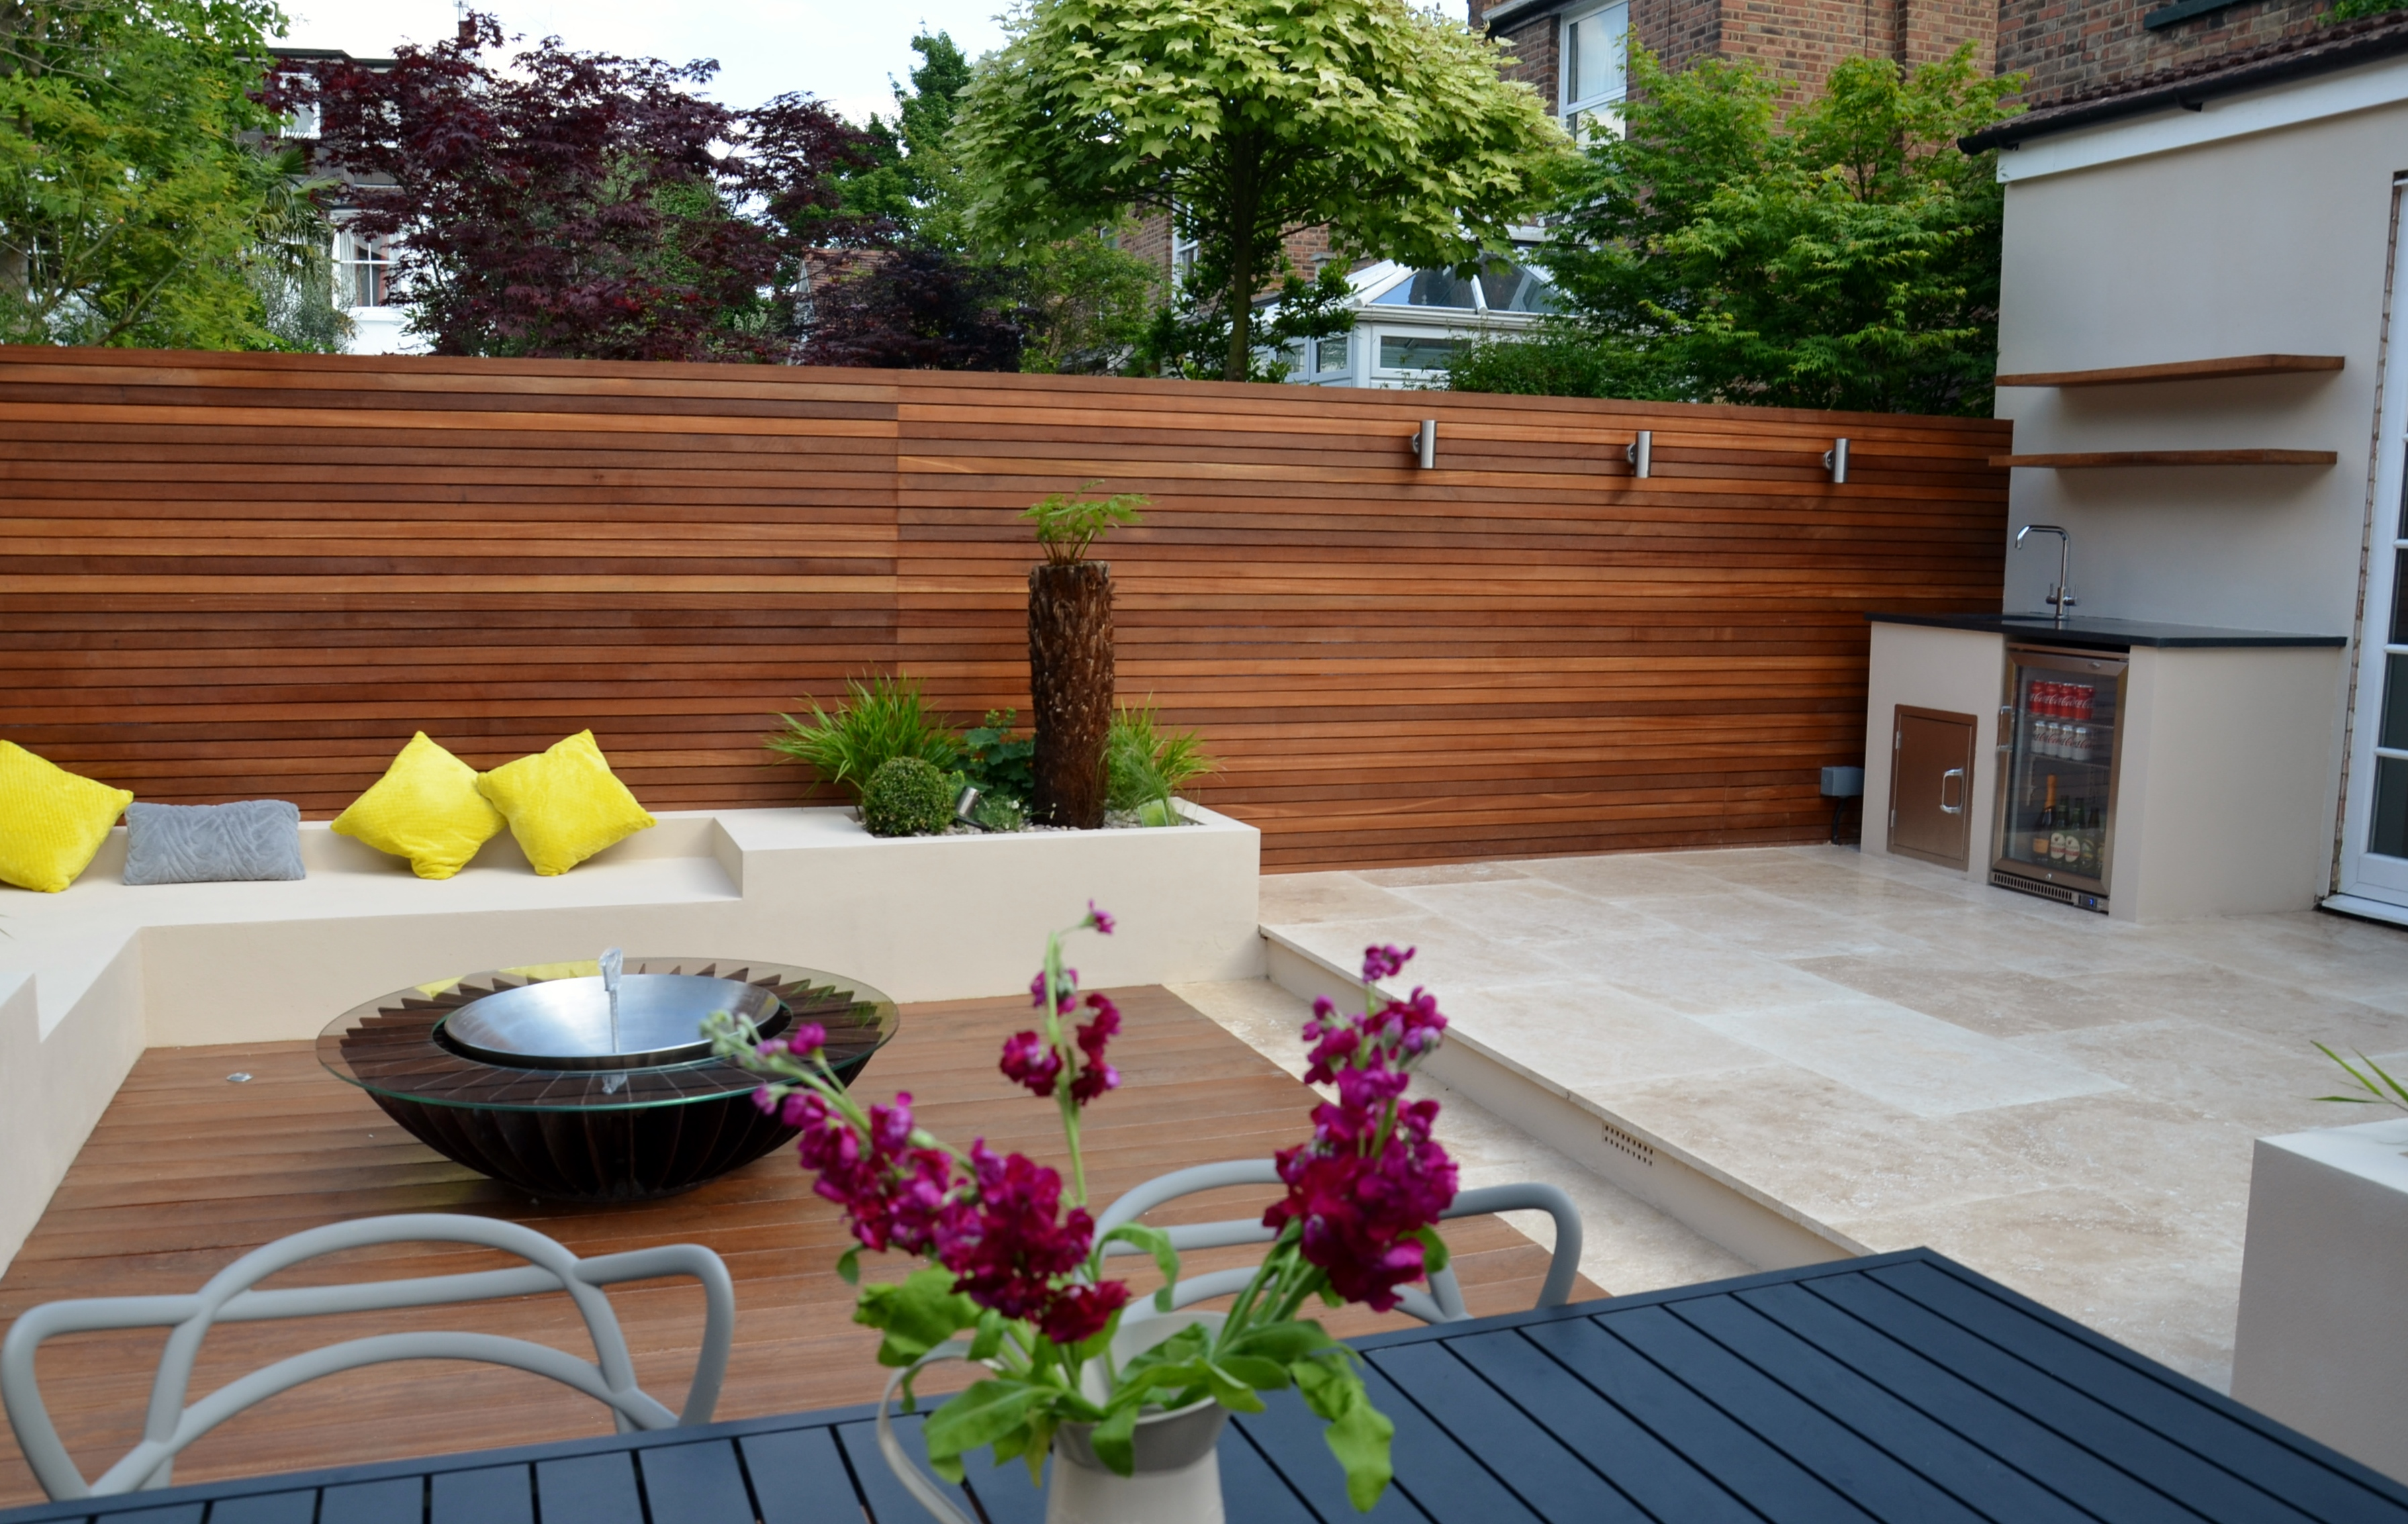 London garden blog london garden blog gardens from for Best garden design